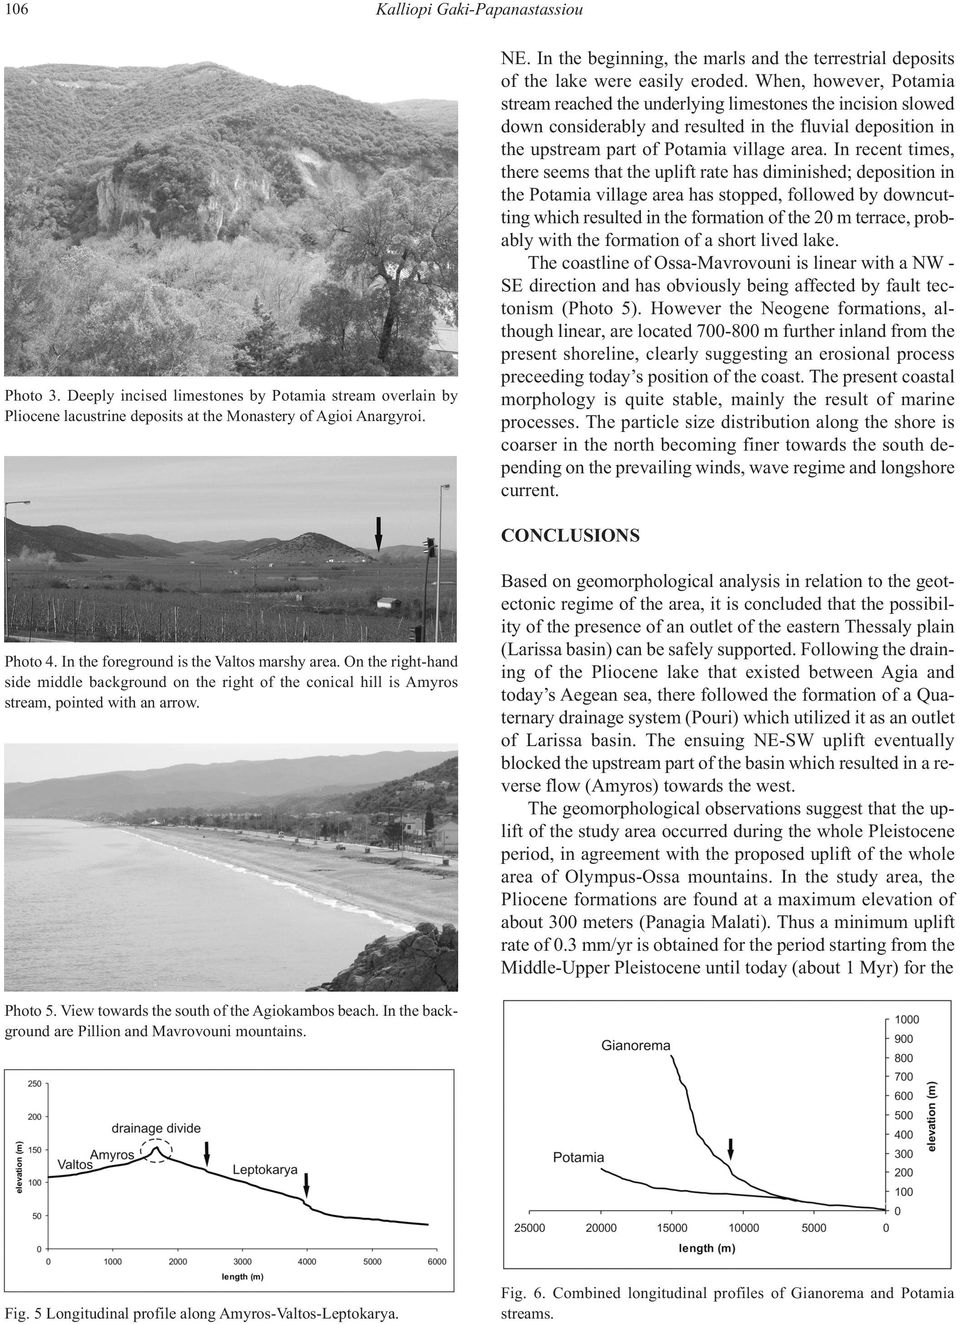 When, however, Potamia stream reached the underlying limestones the incision slowed down considerably and resulted in the fluvial deposition in the upstream part of Potamia village area.